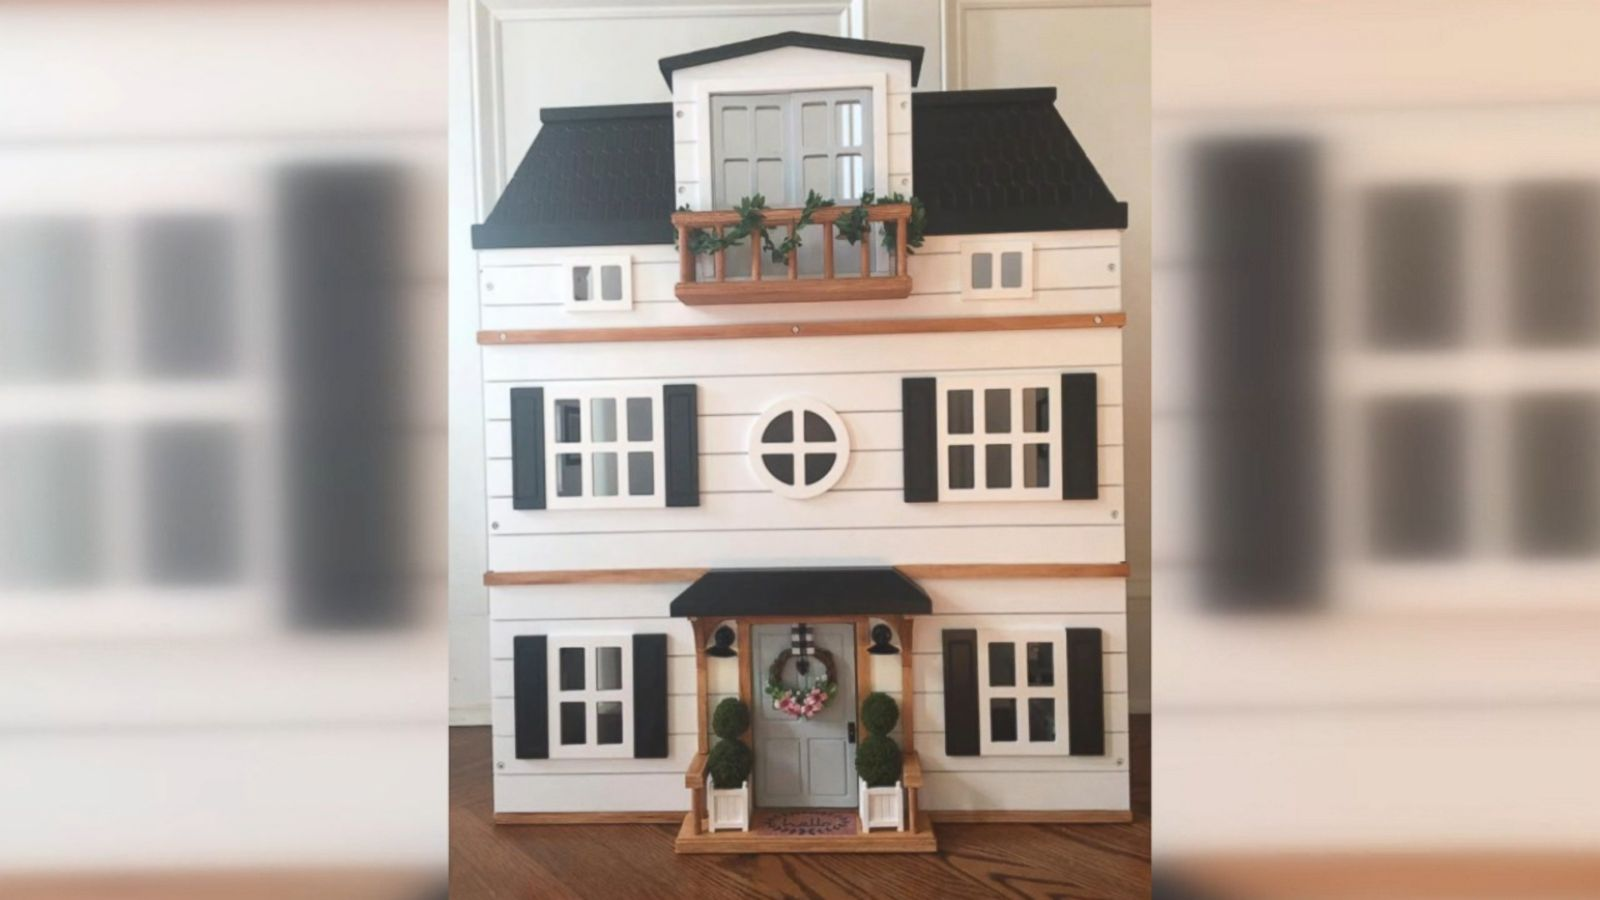 af01a735cba Woman makes incredible 'Fixer Upper'-inspired dollhouse - ABC News